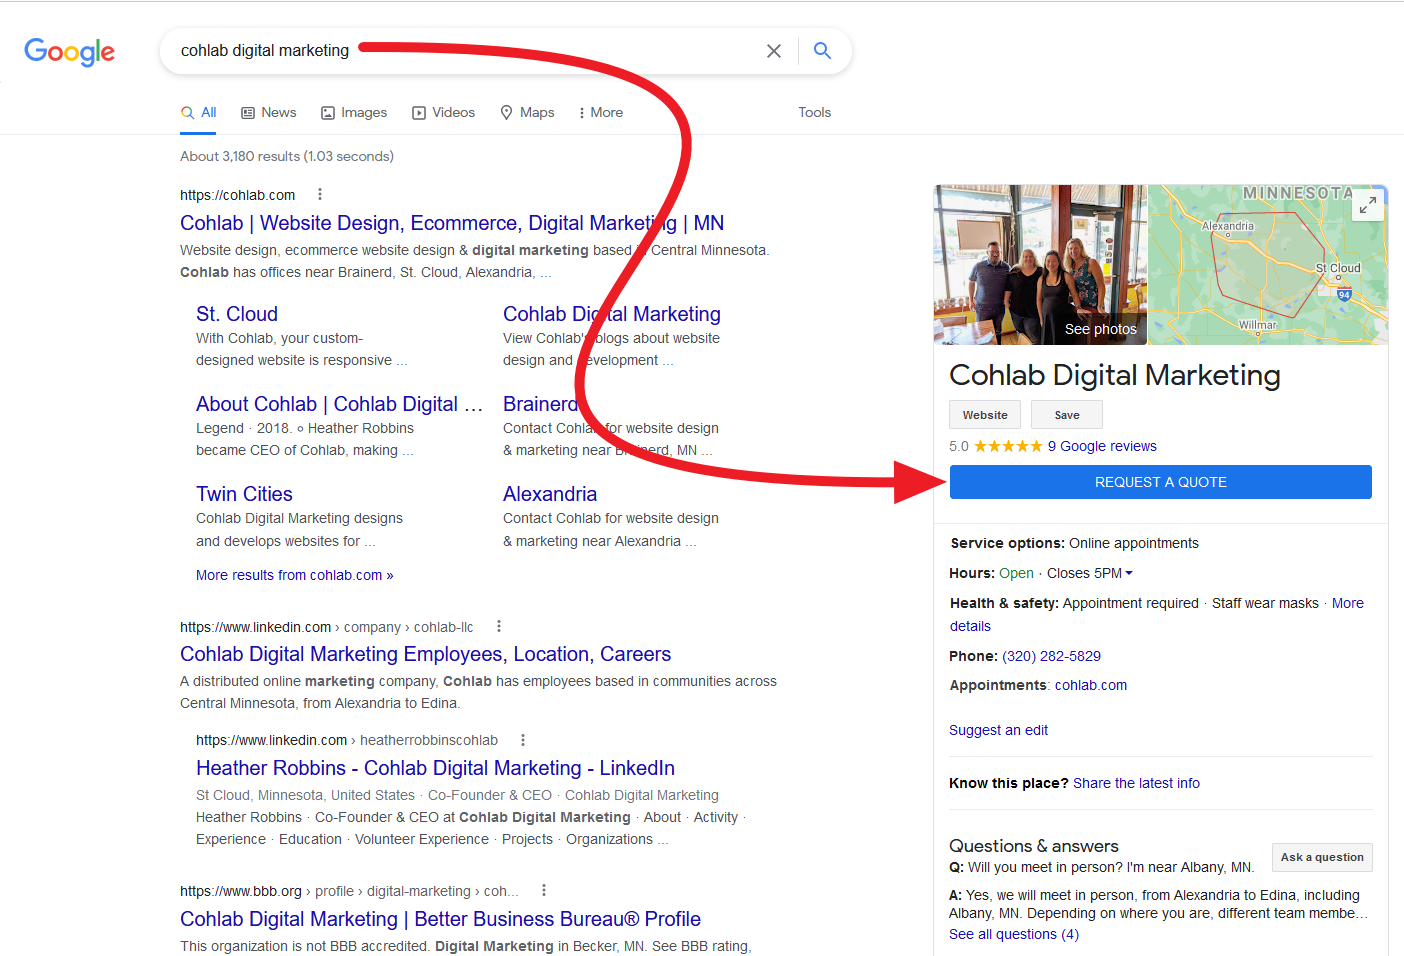 Screenshot of Desktop version of Request A Quote button in Google My Business listing for Cohlab Digital Marketing.